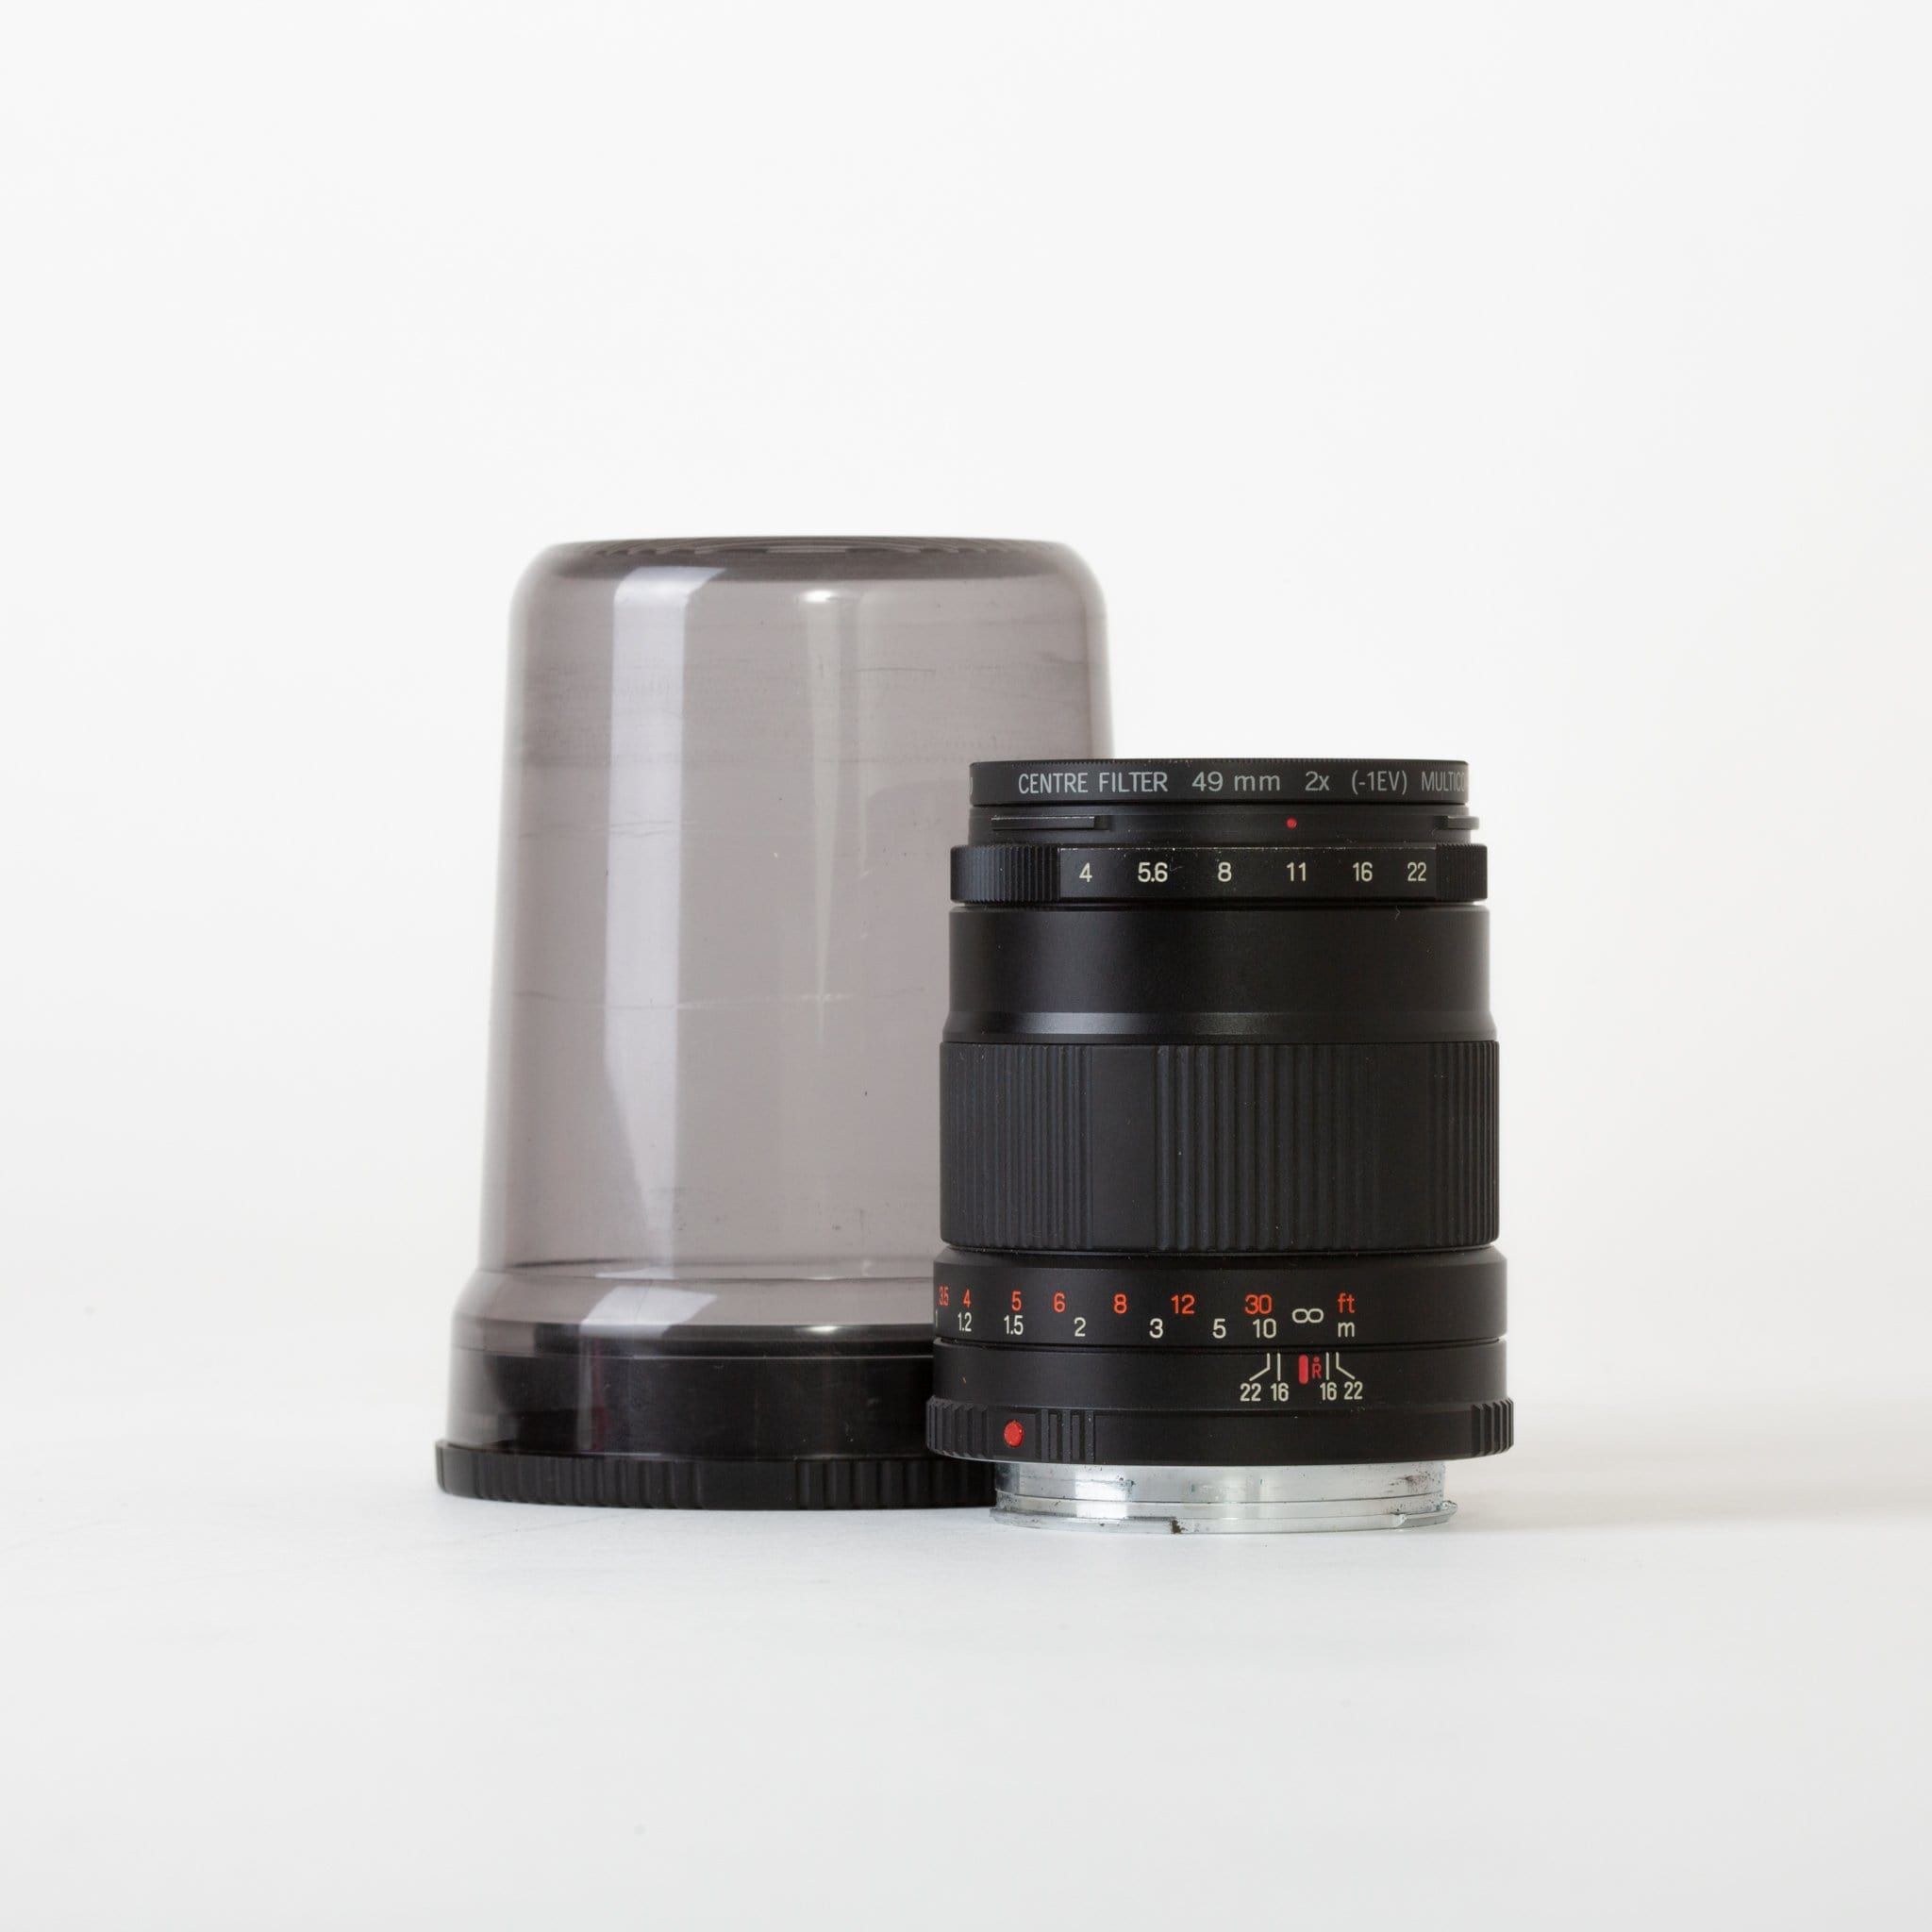 Hasselblad Xpan 90mm Lens (Lens Only)